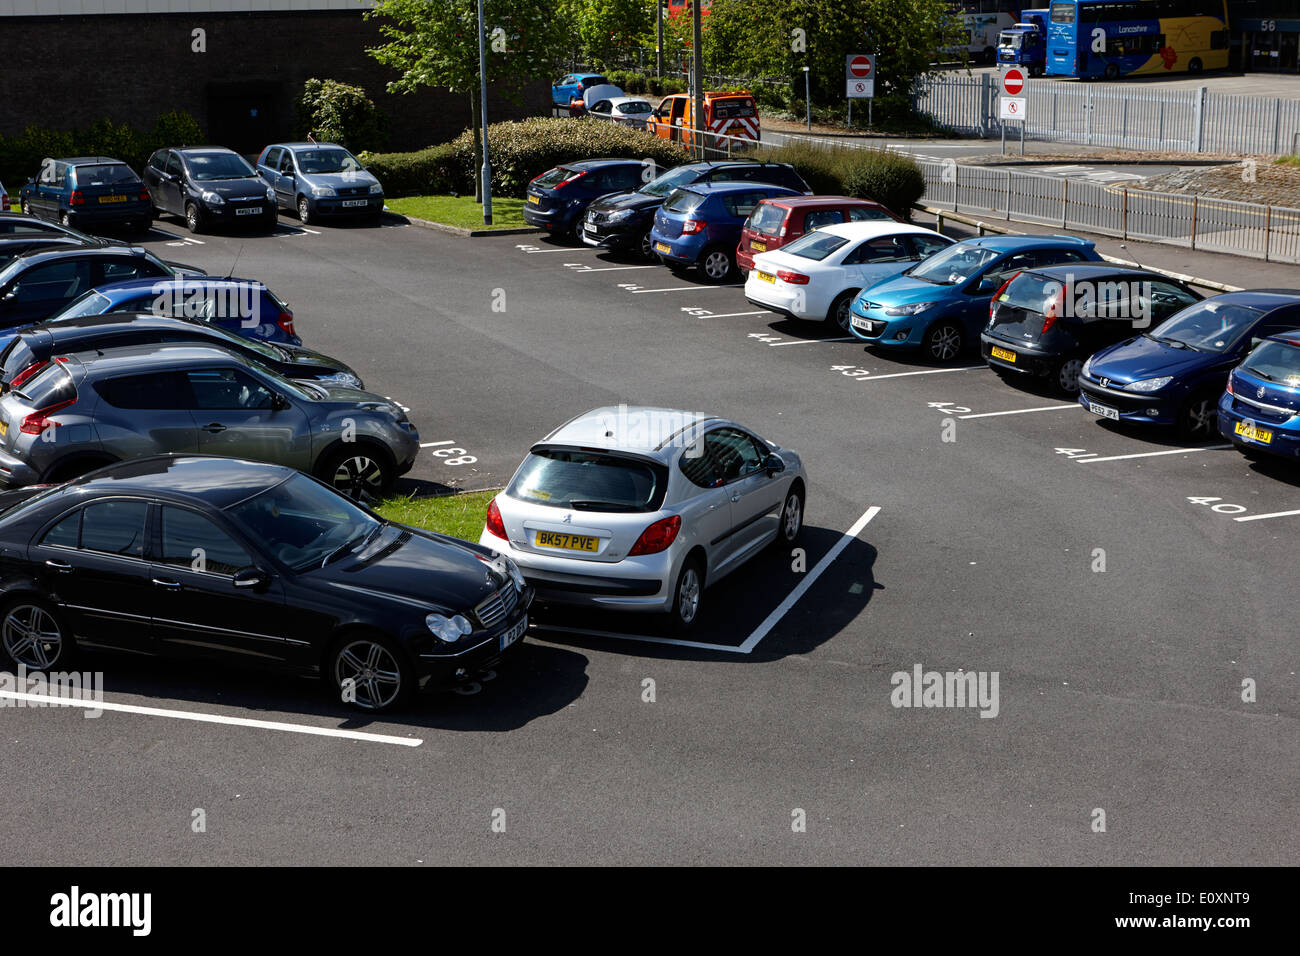 numbered private car park parking bays in Preston England UK - Stock Image